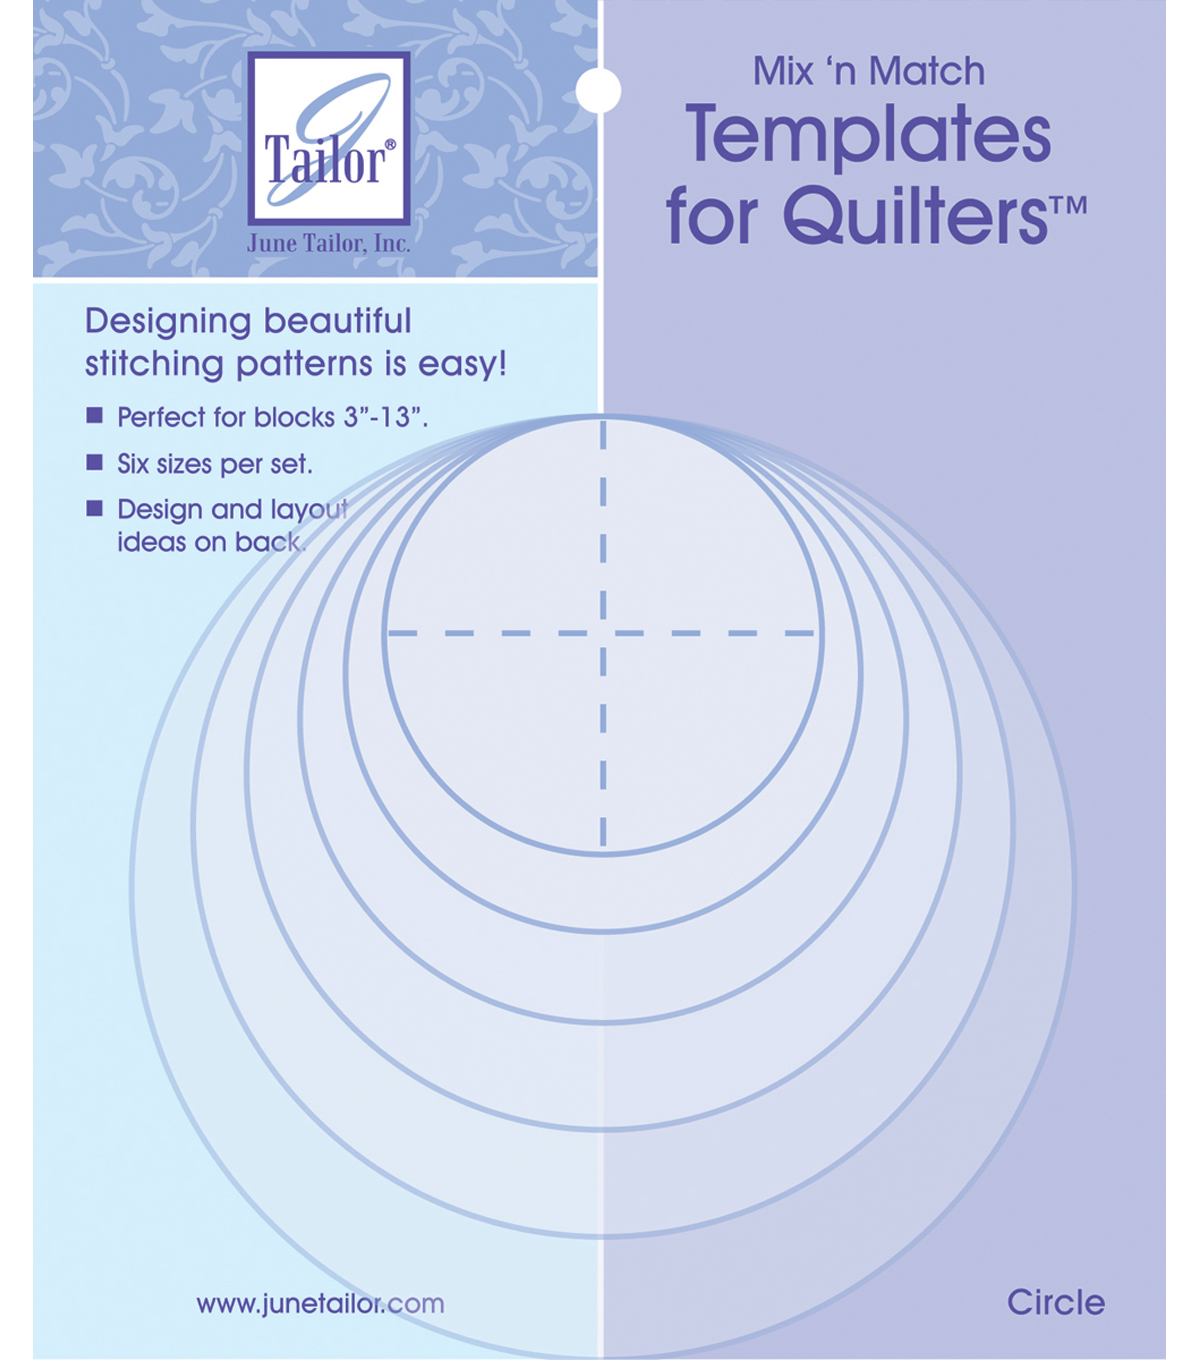 June Tailor Mix\u0027n Match Templates For Quilters